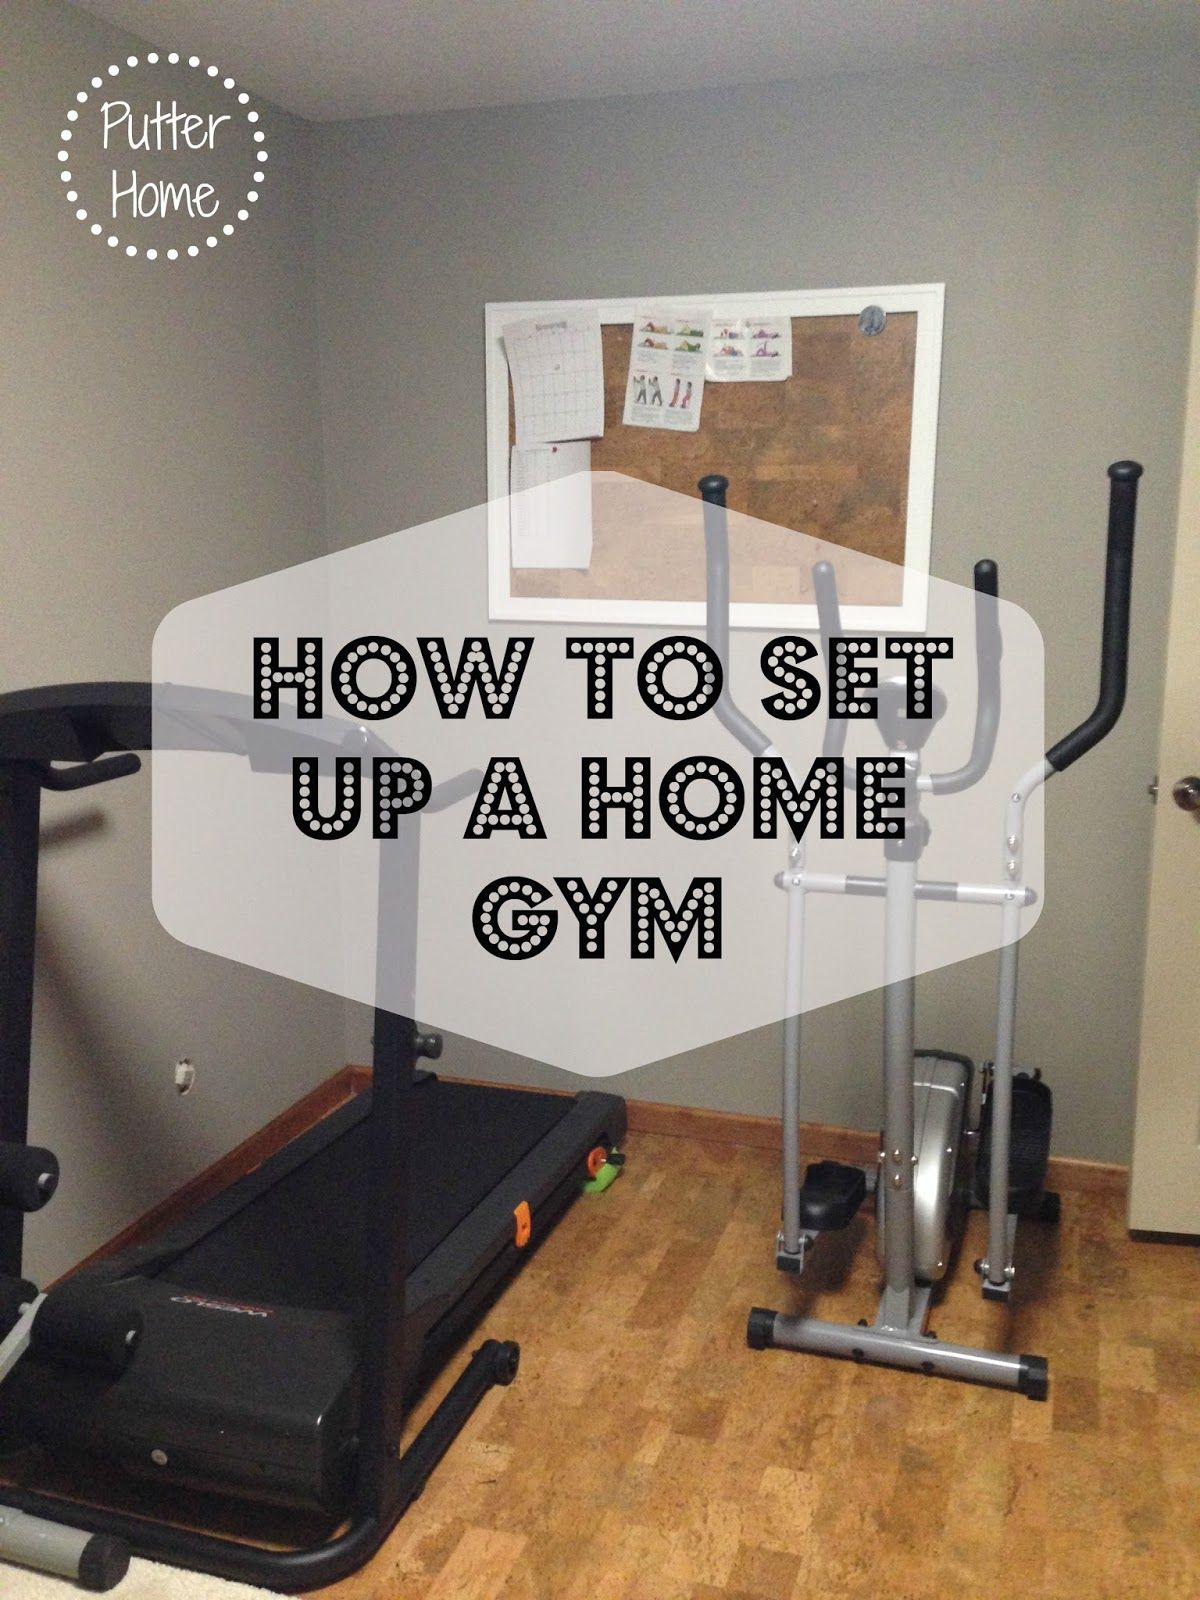 How to set up a home gym putter home better health at